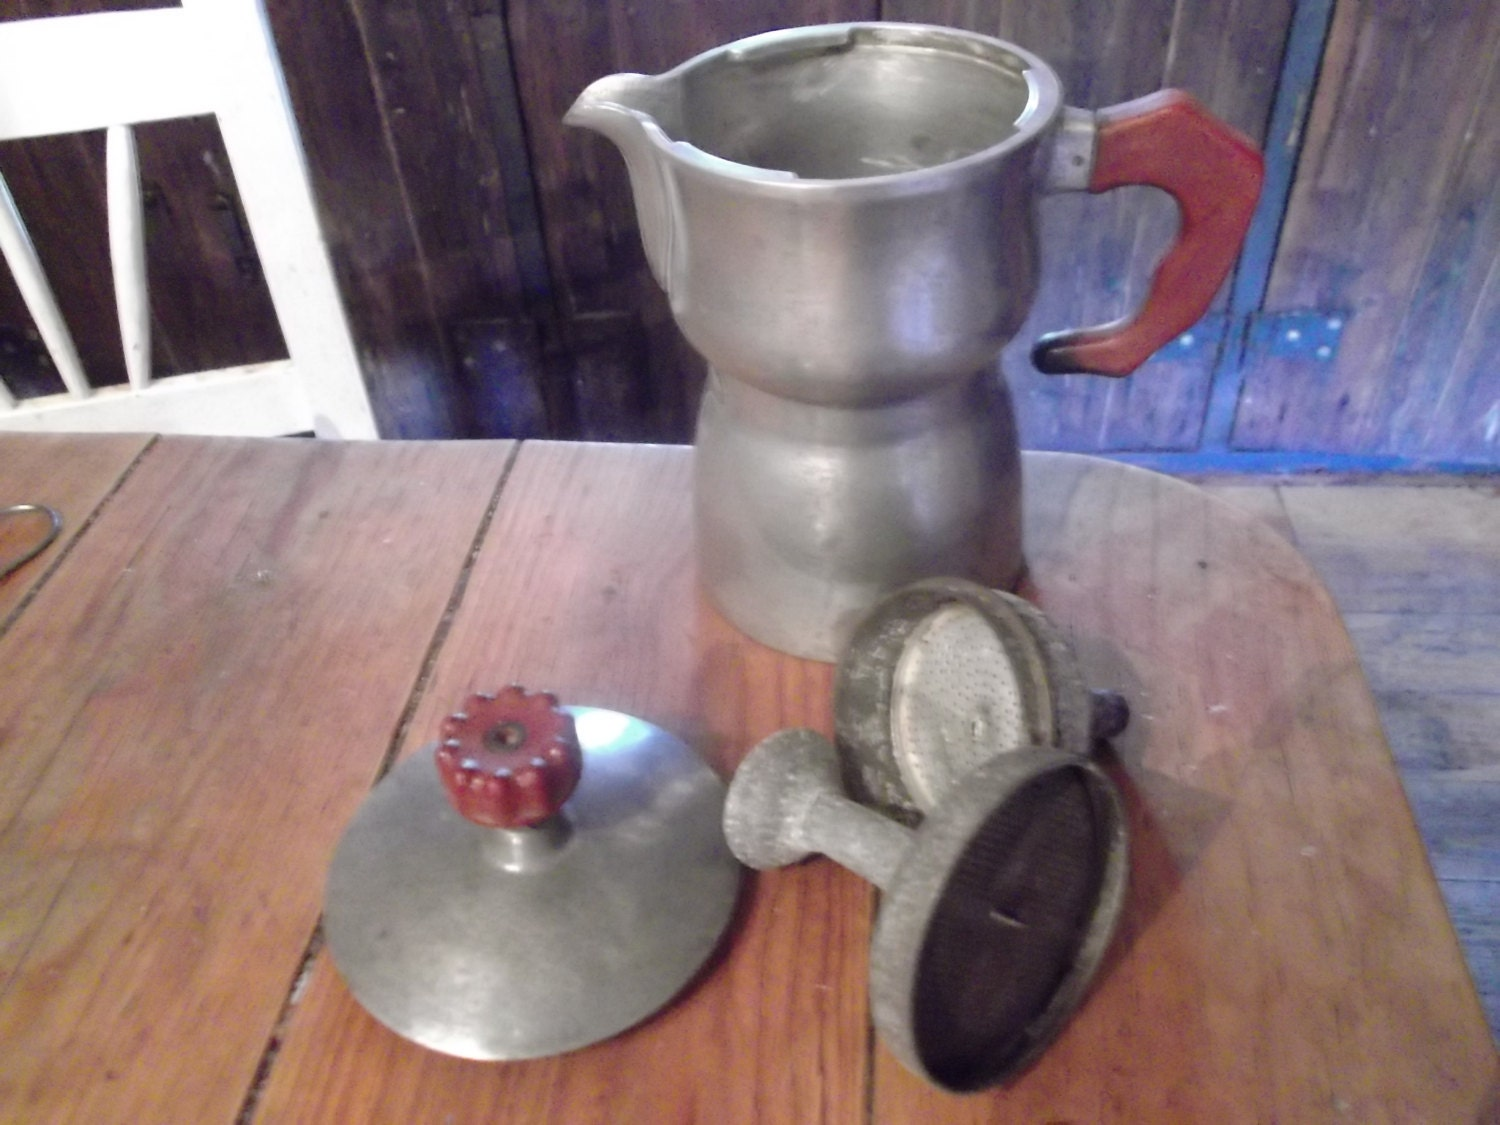 Antique Italian Coffee Maker : antique ITALIAN ESPRESSO MAKER barista collectibles